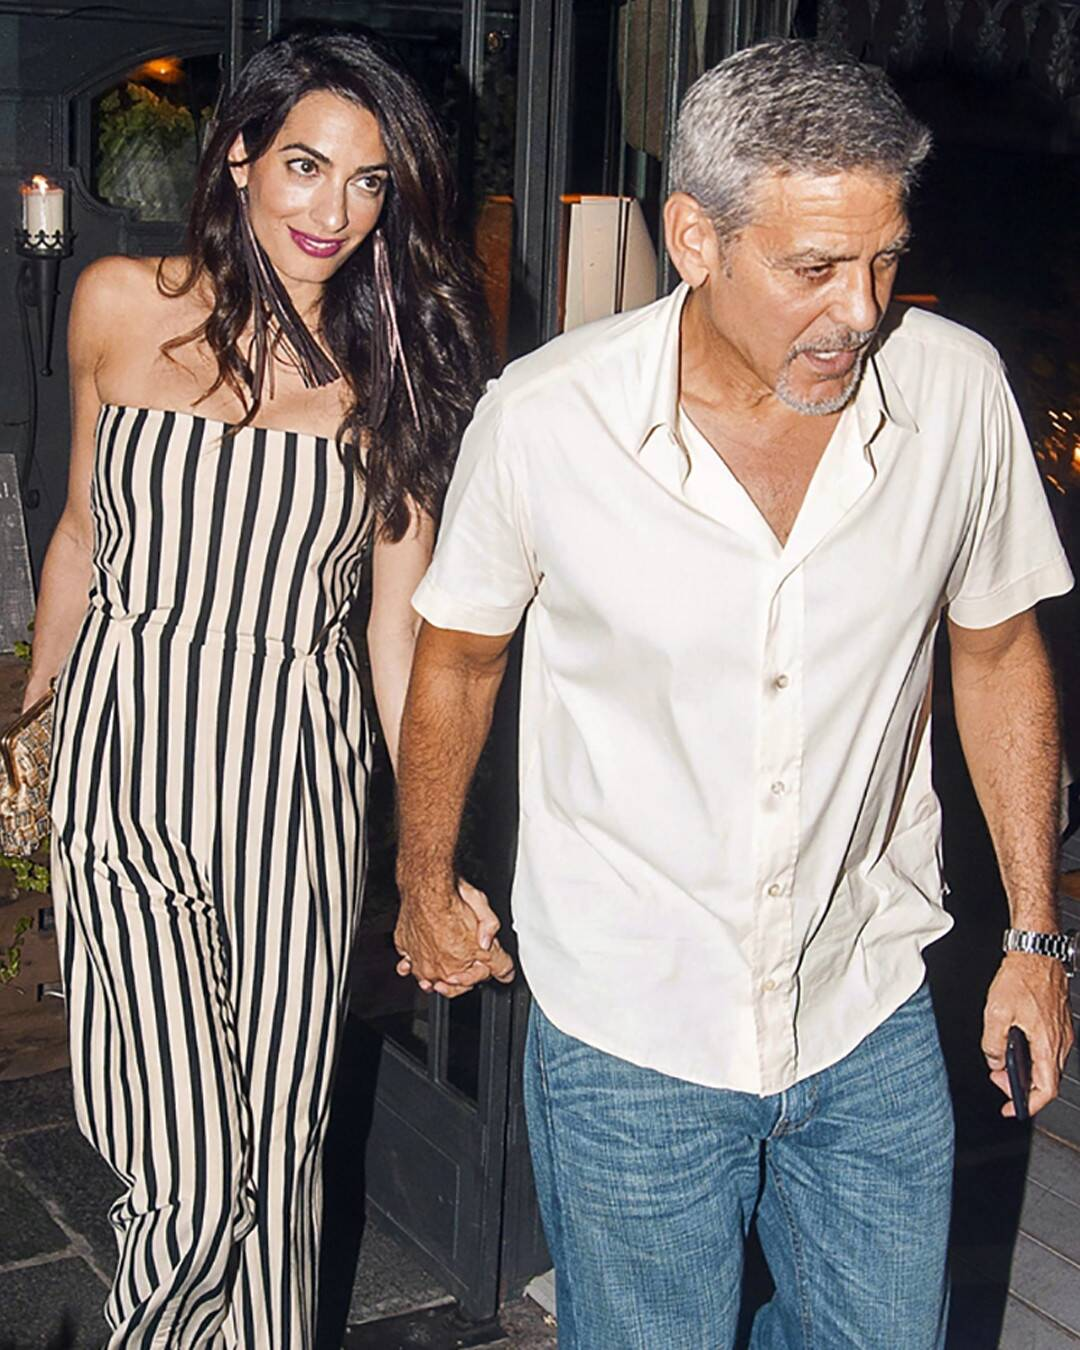 Amal Clooney Enjoys Dinner Date in Italy With George Clooney and Her Mom Rs_1080x1350-170807132927-1080.George-Clooney-Amal-Clooney-Lake-Como.ms.080717